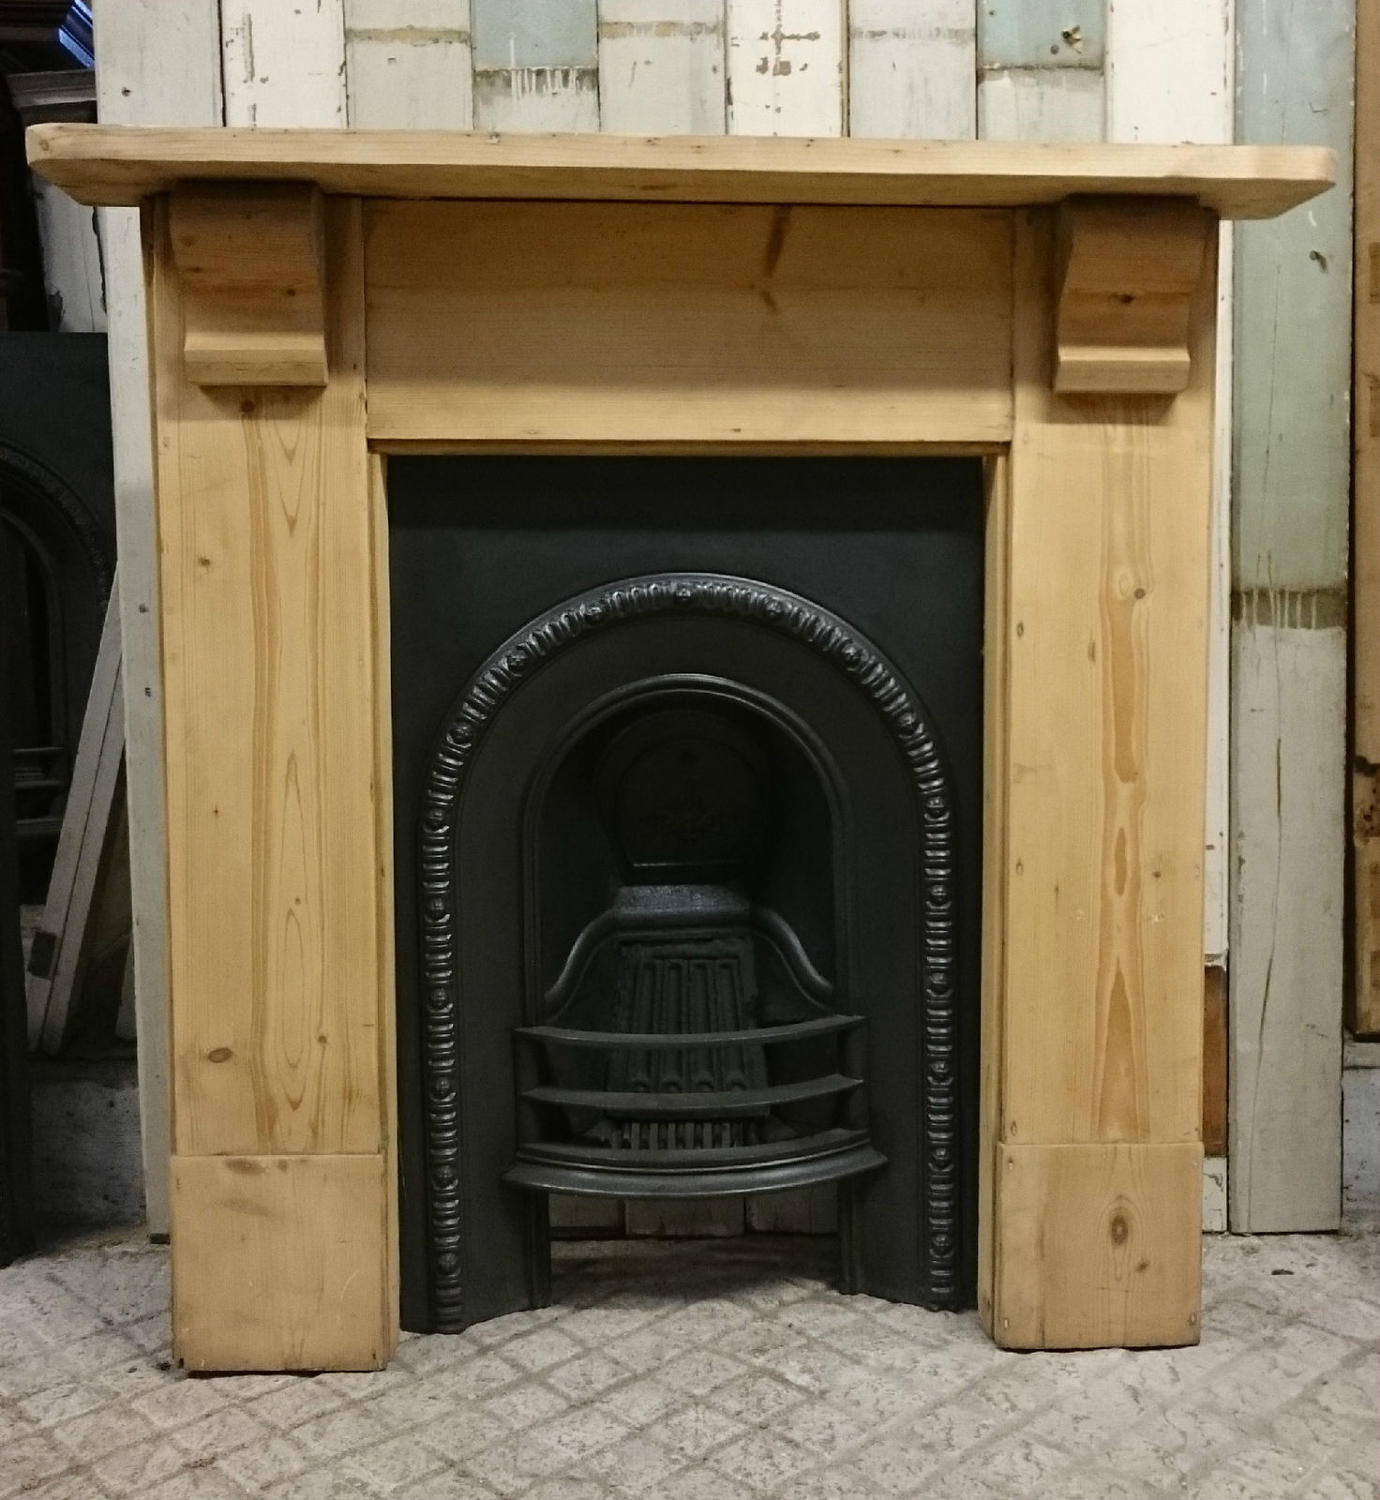 Victorian Cast Iron Fire Insert and Pine Surround for Decorative Use